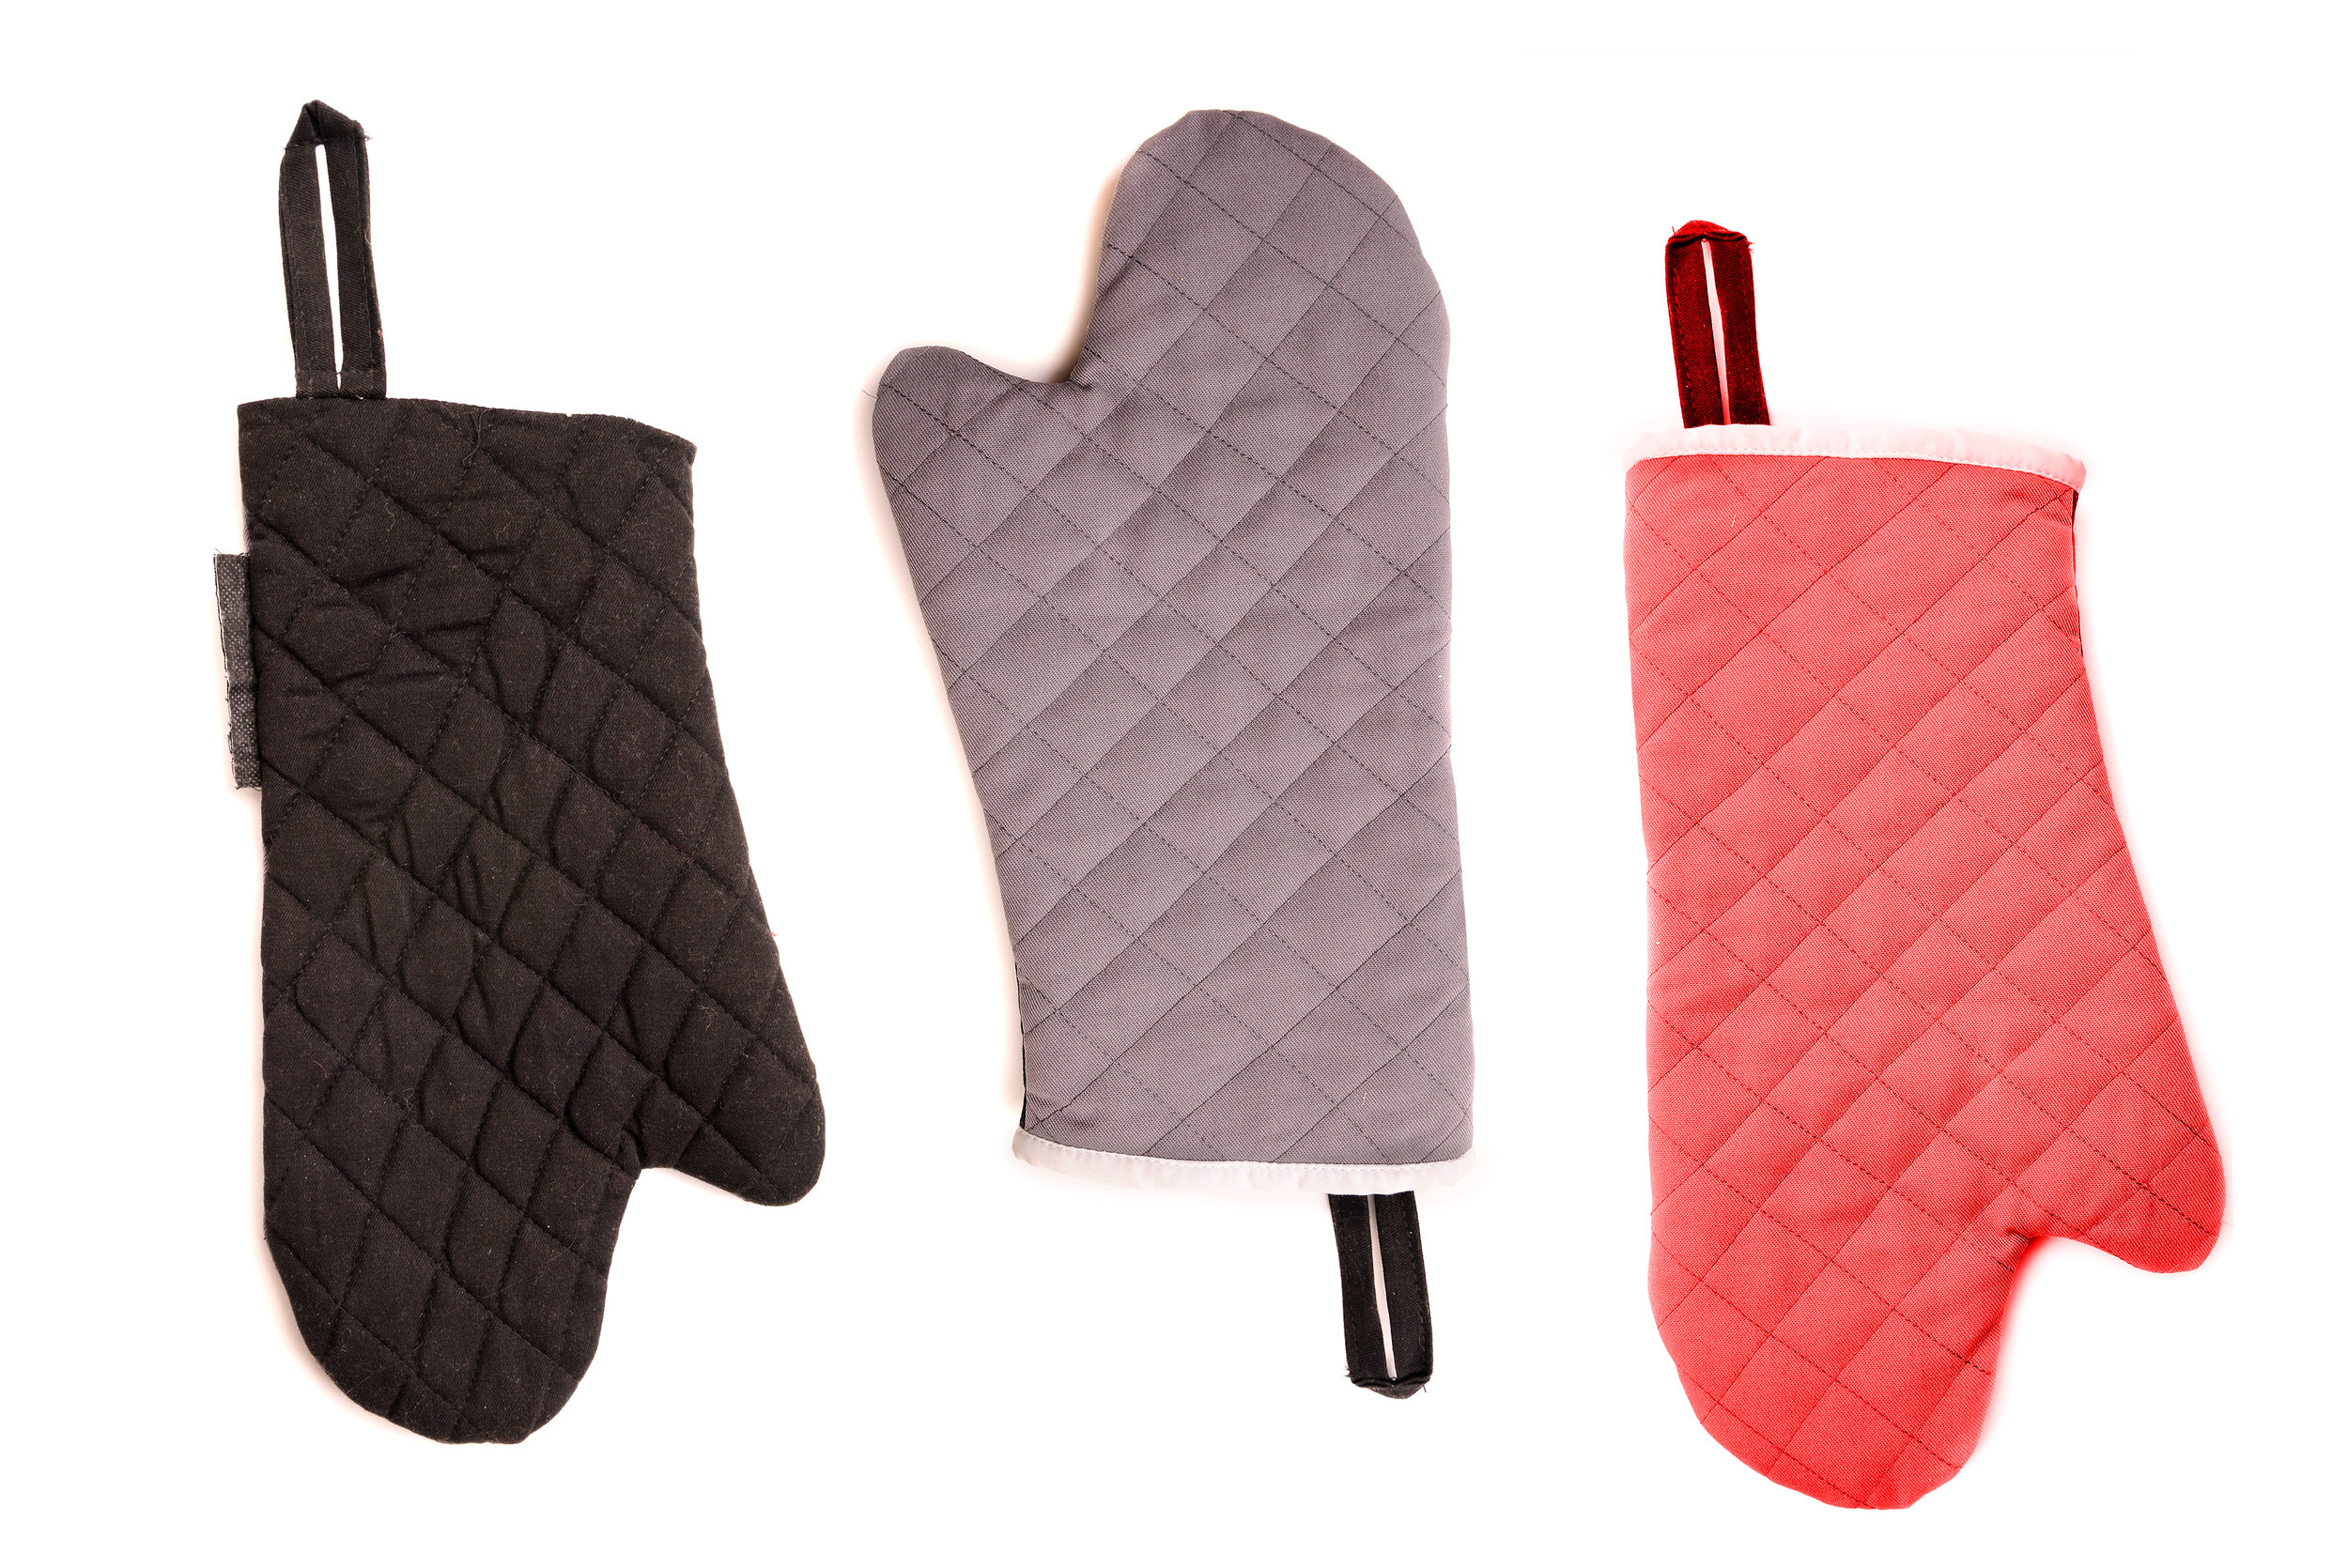 Durable Oven Mitts